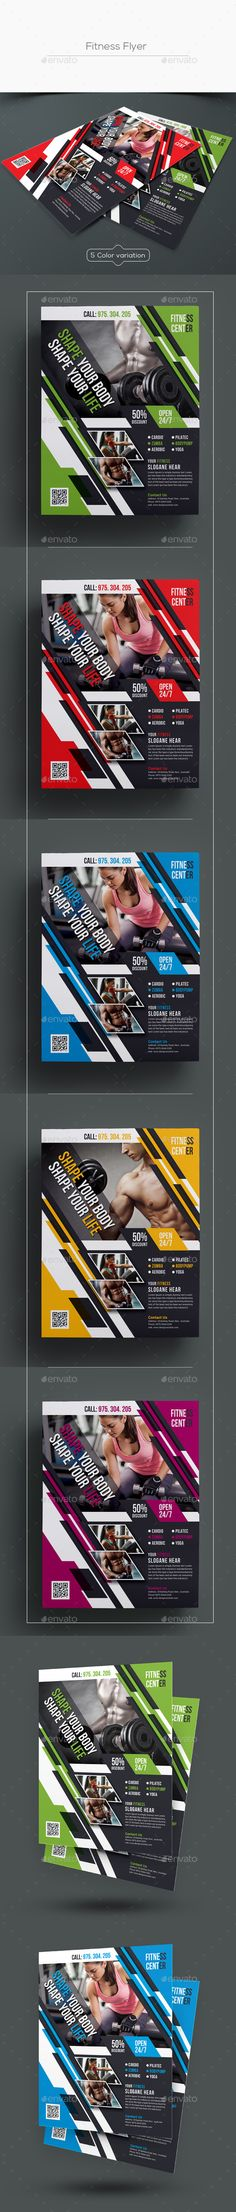 #Fitness #Flyer - Sports Events Download here:  https://graphicriver.net/item/fitness-flyer/19208951?ref=alena994